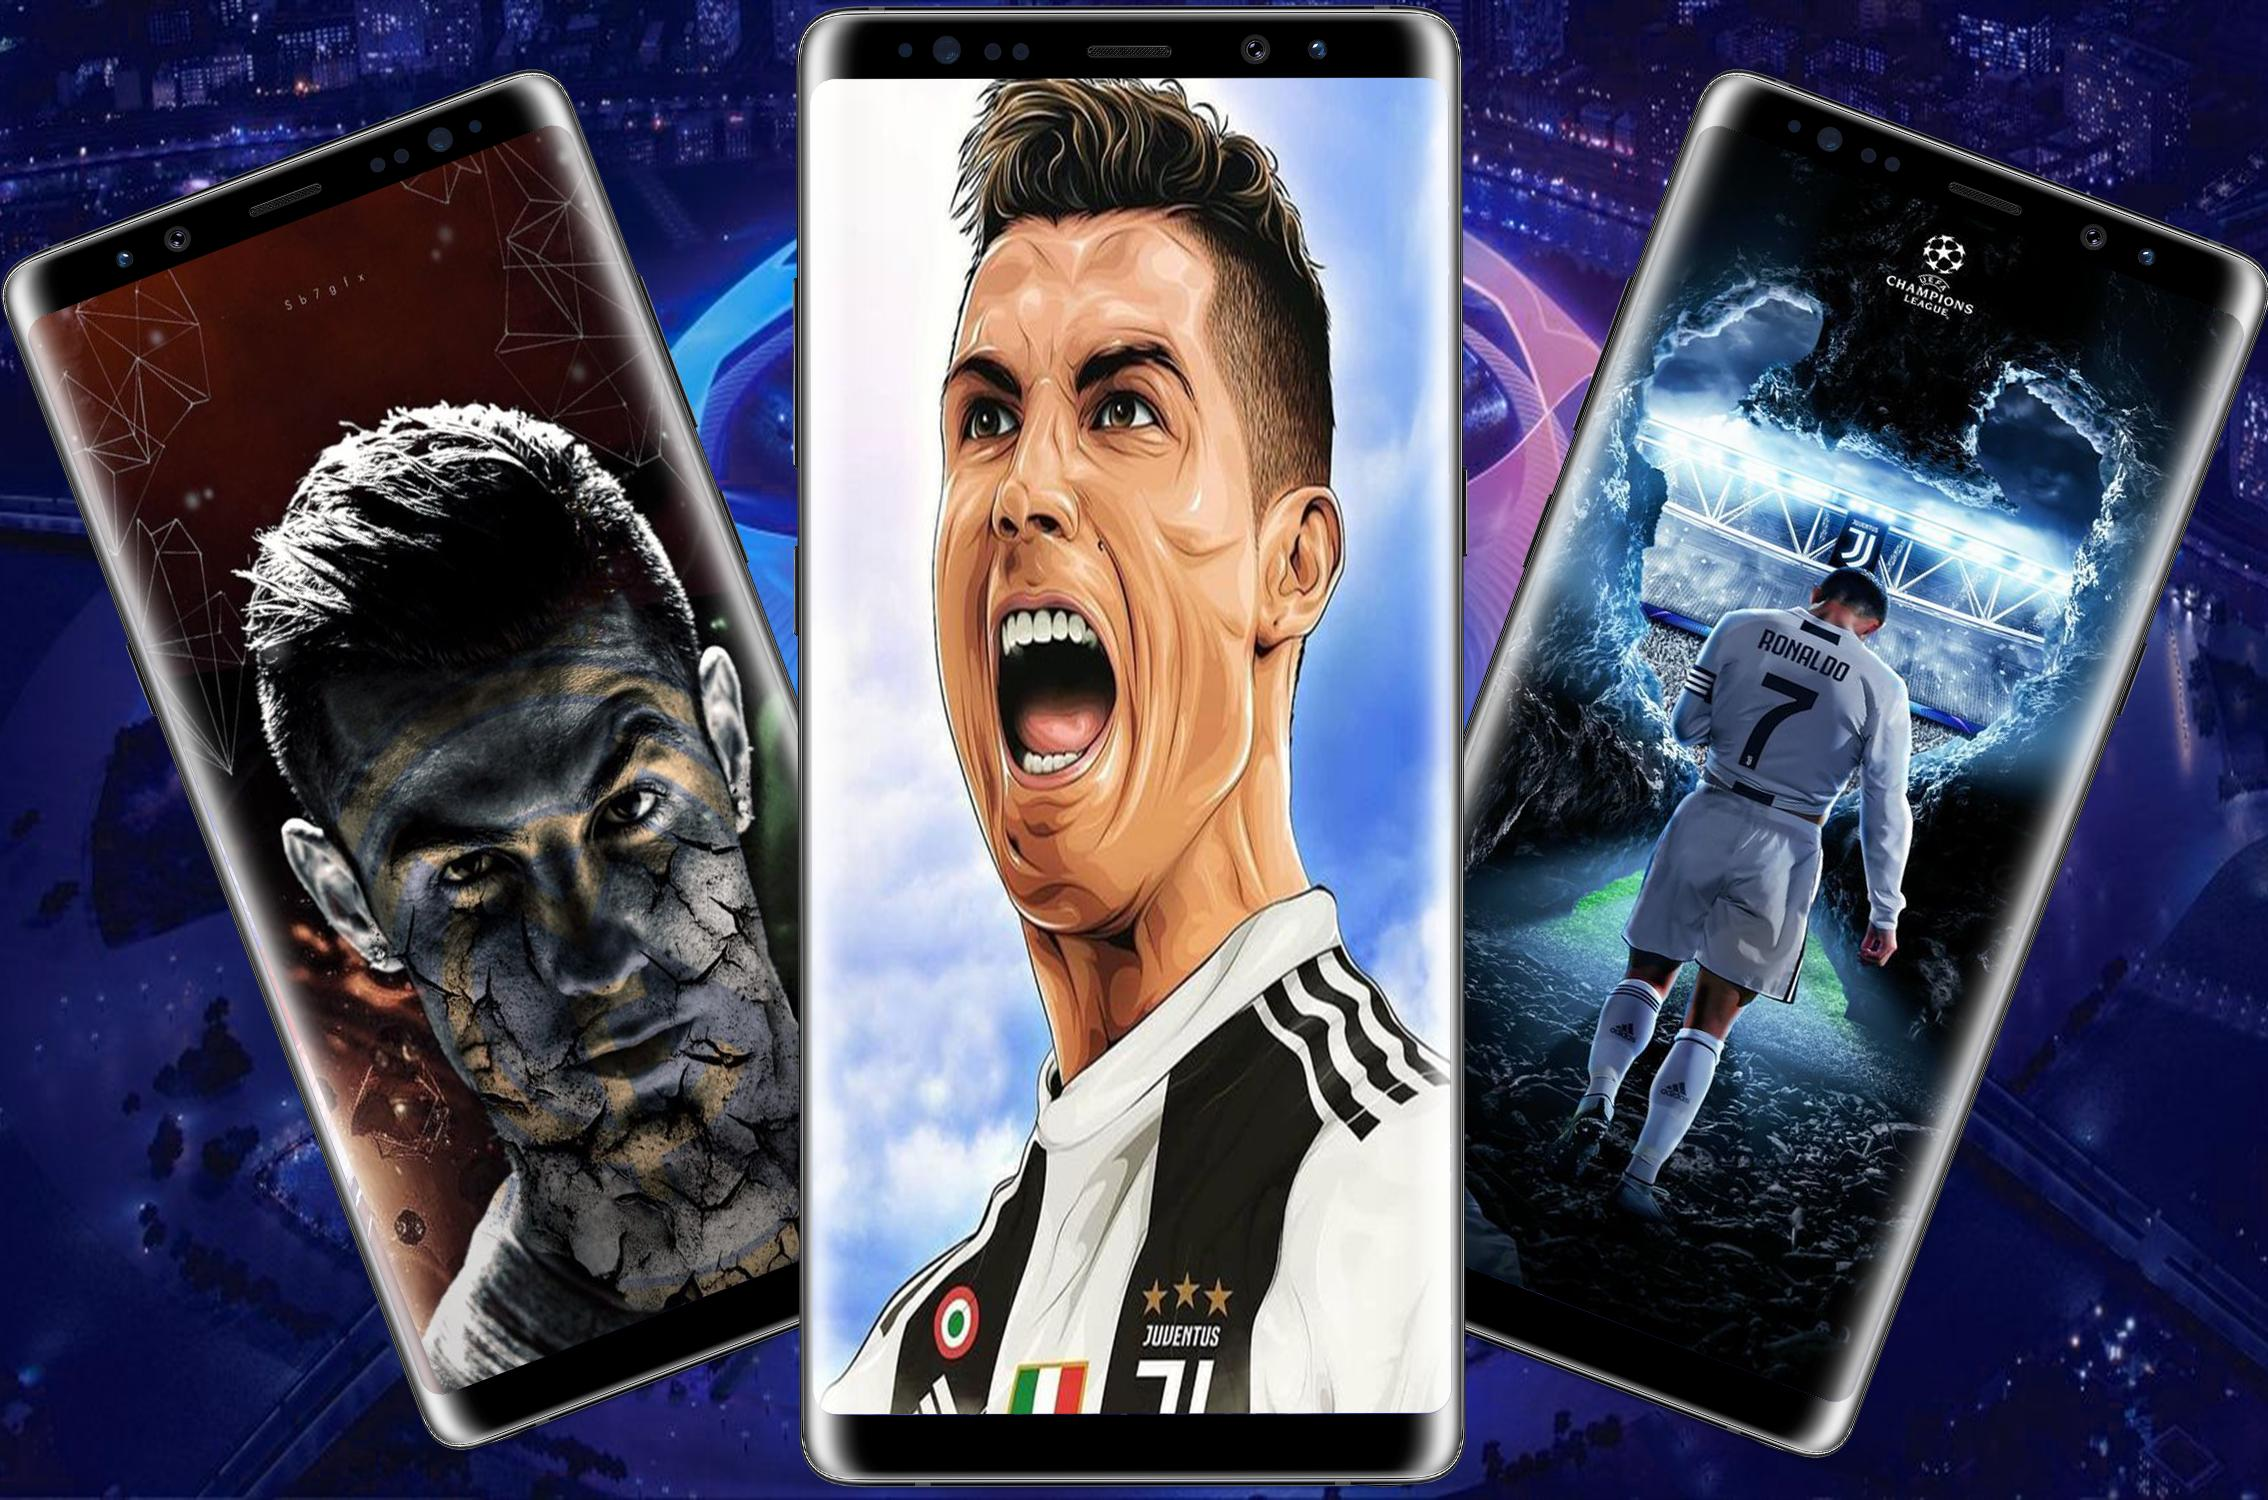 Cristiano Ronaldo wallpapers 2020 HD 4K CR7 for Android   APK Download 2268x1500